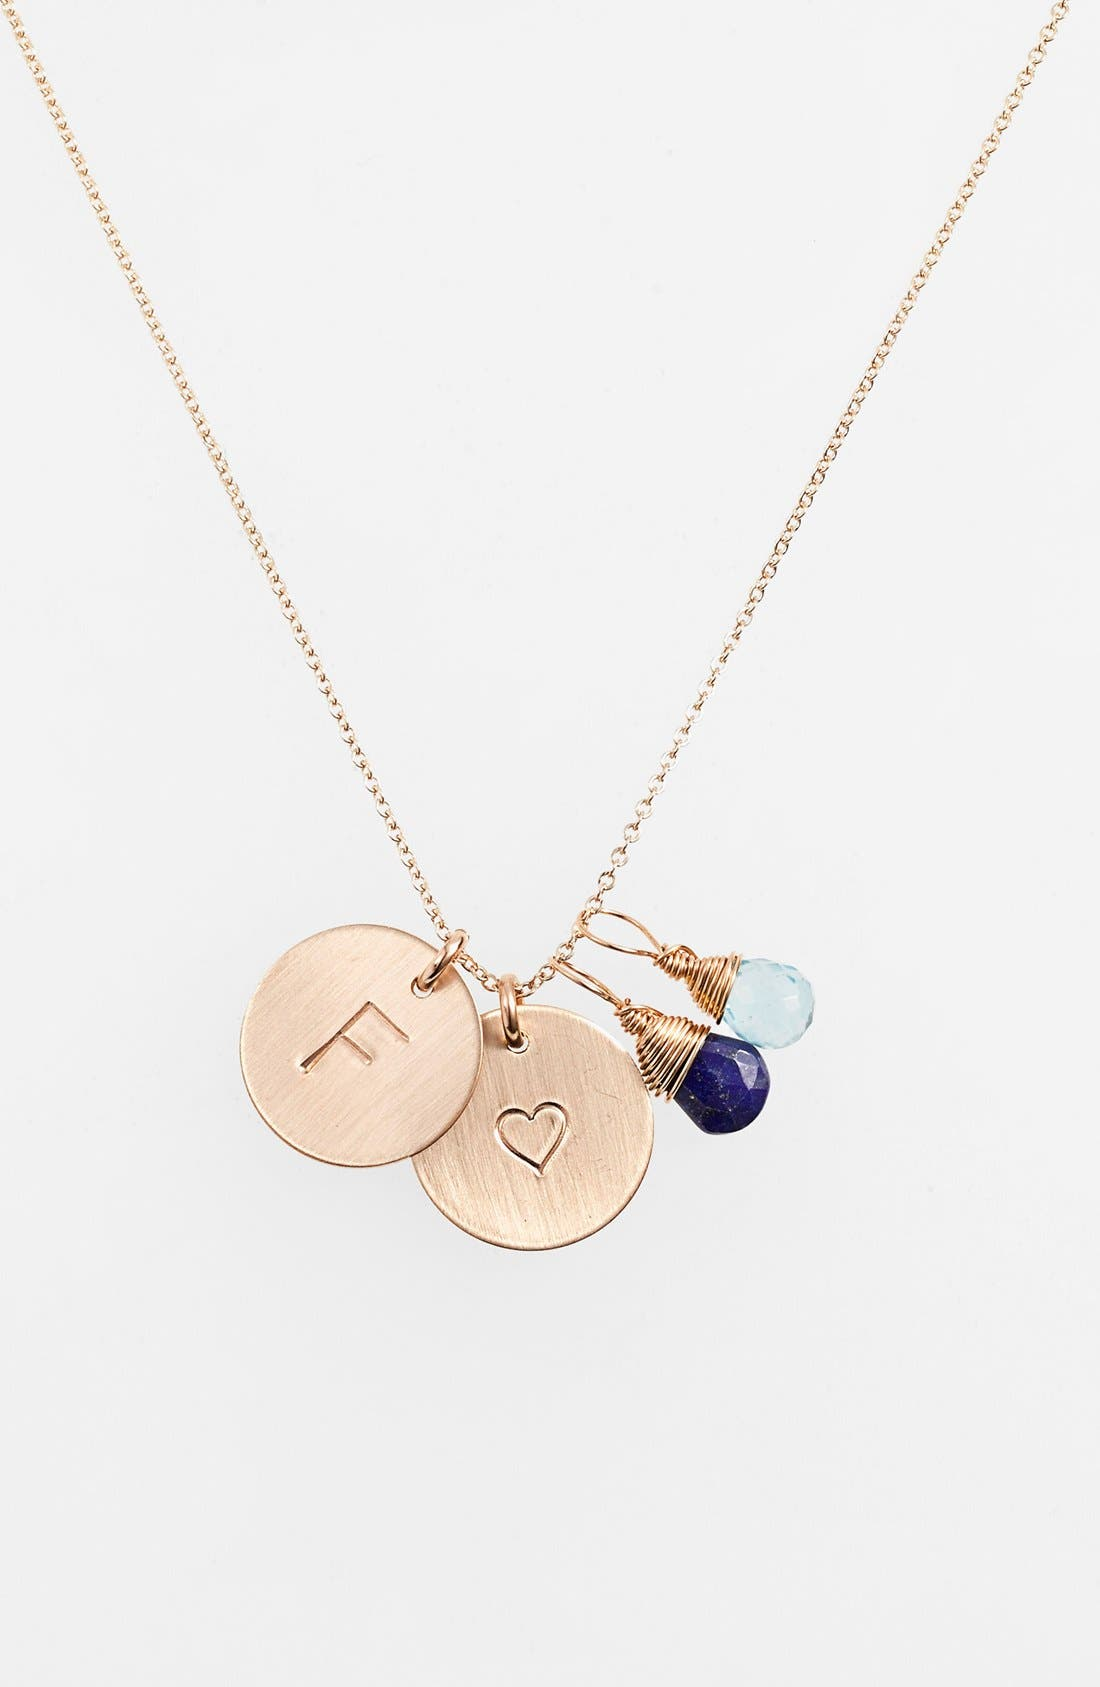 Blue Quartz Initial & Heart 14k-Gold Fill Disc Necklace,                             Main thumbnail 1, color,                             Royal Blue And Ocean Blue F